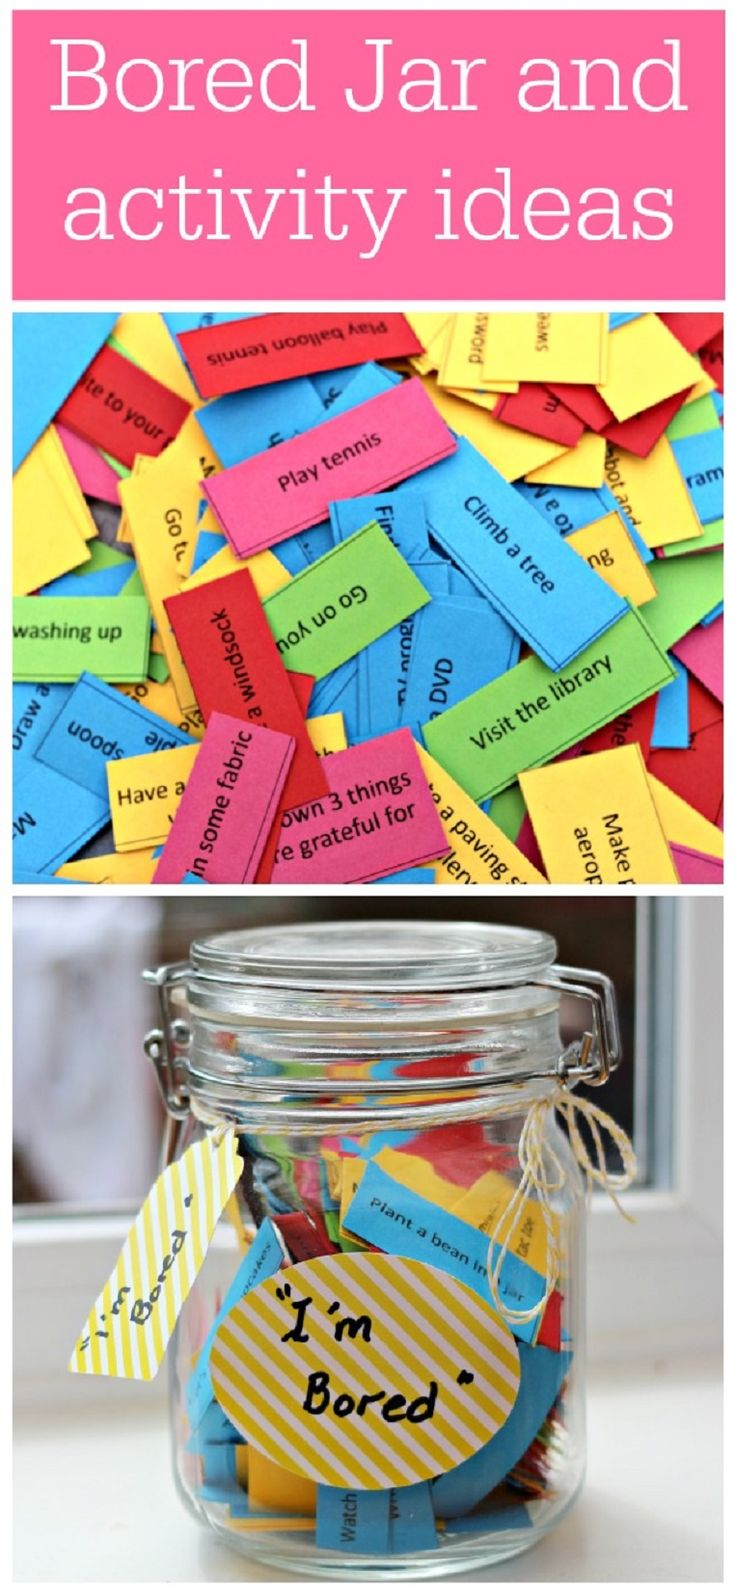 Make a bored jar - 16 DIY Ways To Stay Busy And Crafty When It's Snowing | GleamItUp